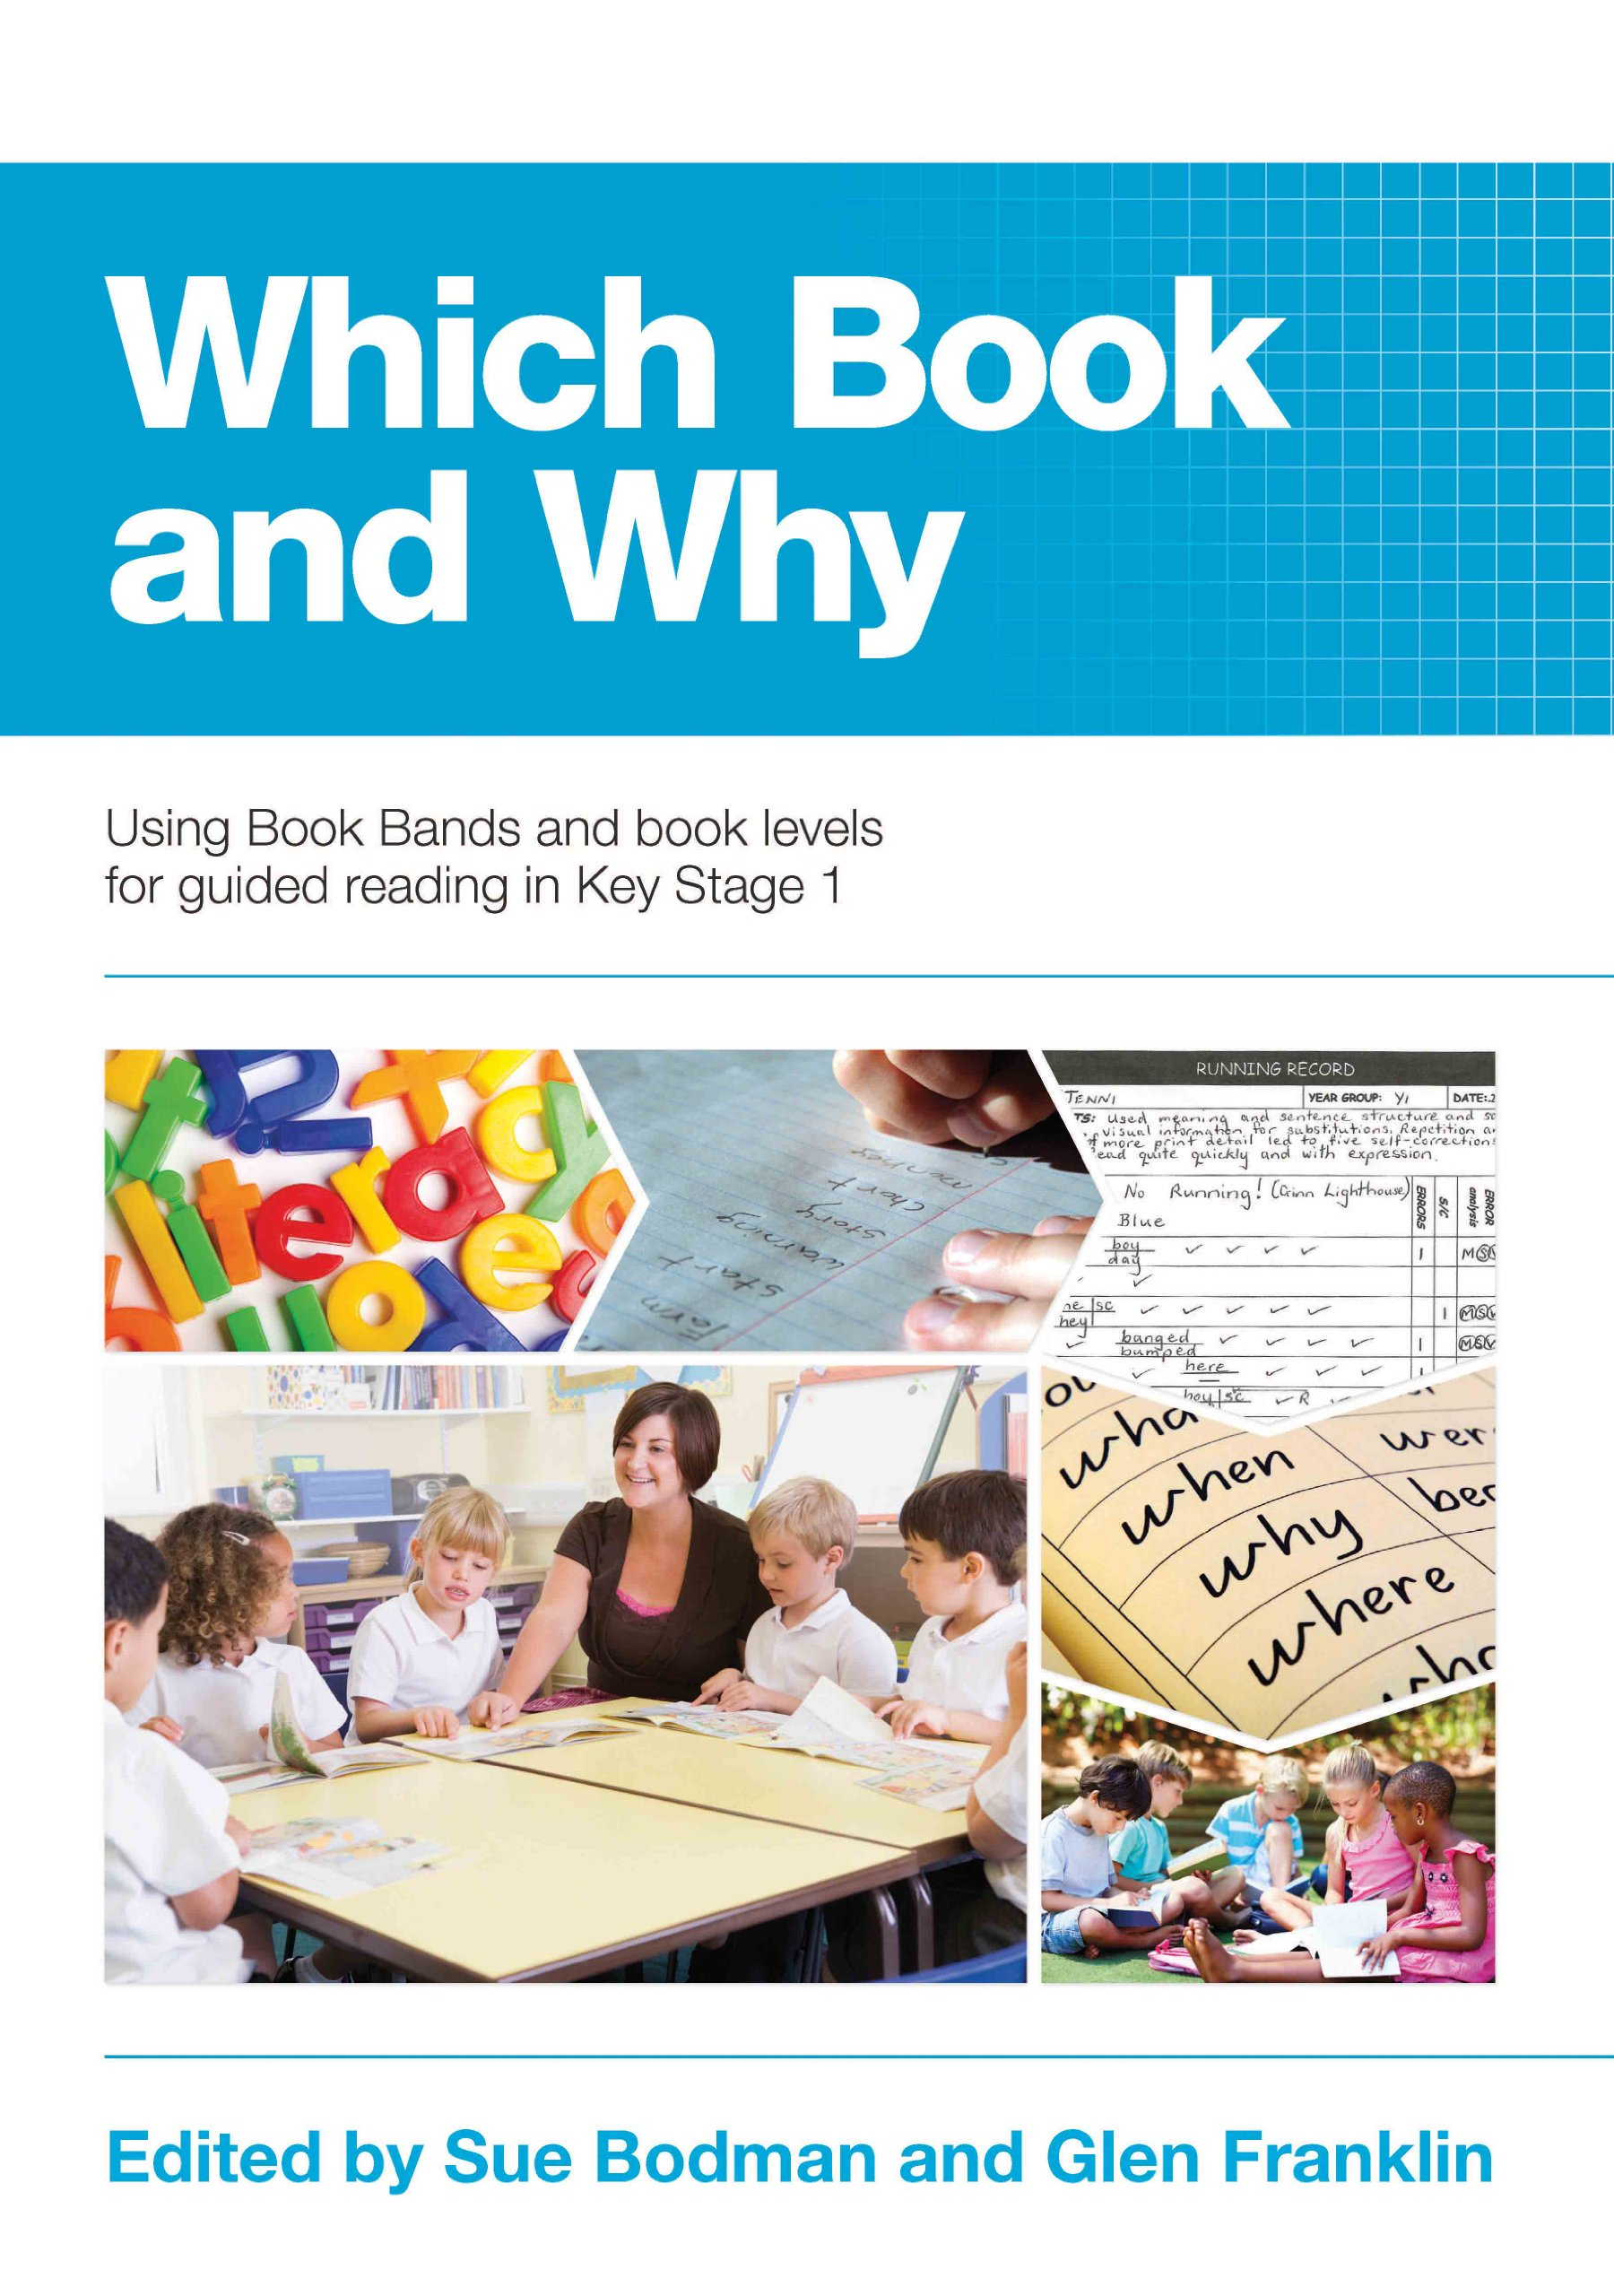 Guiding Reading: A Handbook for Teaching Guided Reading at Key Stage 2